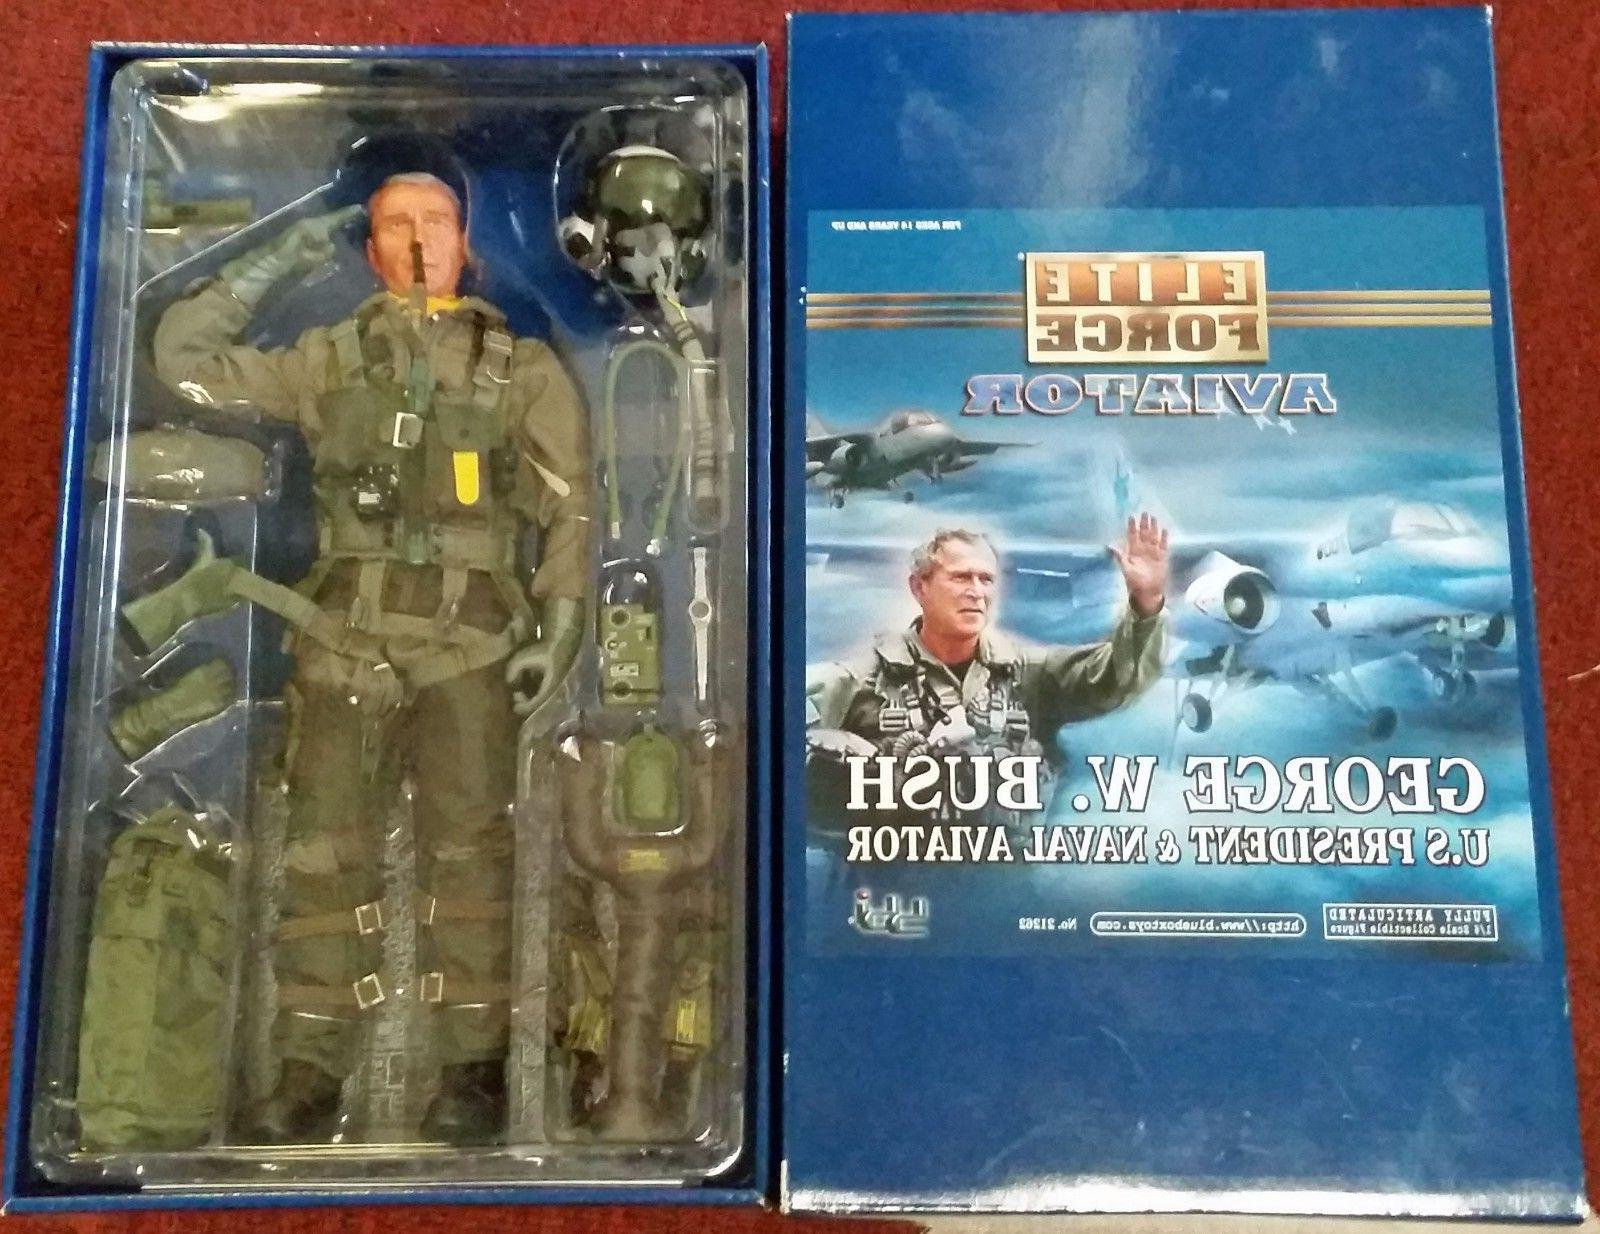 Blue Box Elite Force George Bush Naval Aviator #21262 12 Inc